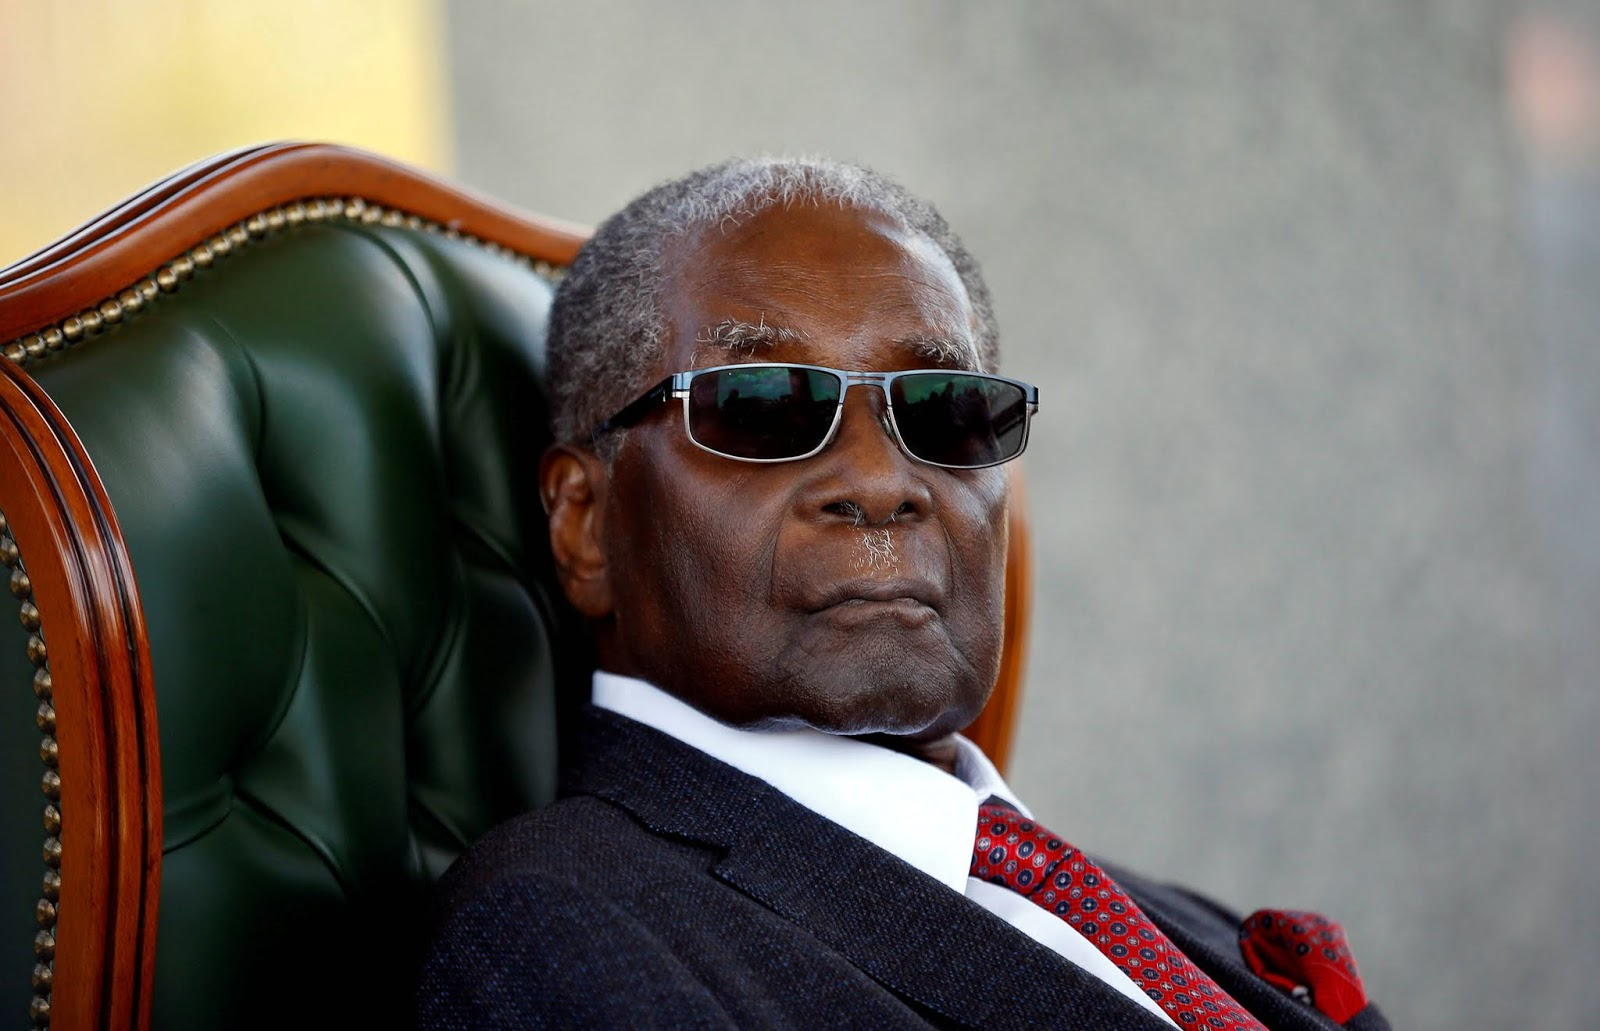 Robert Mugabe Dead: The Former Zimbabwe President Dies at 95